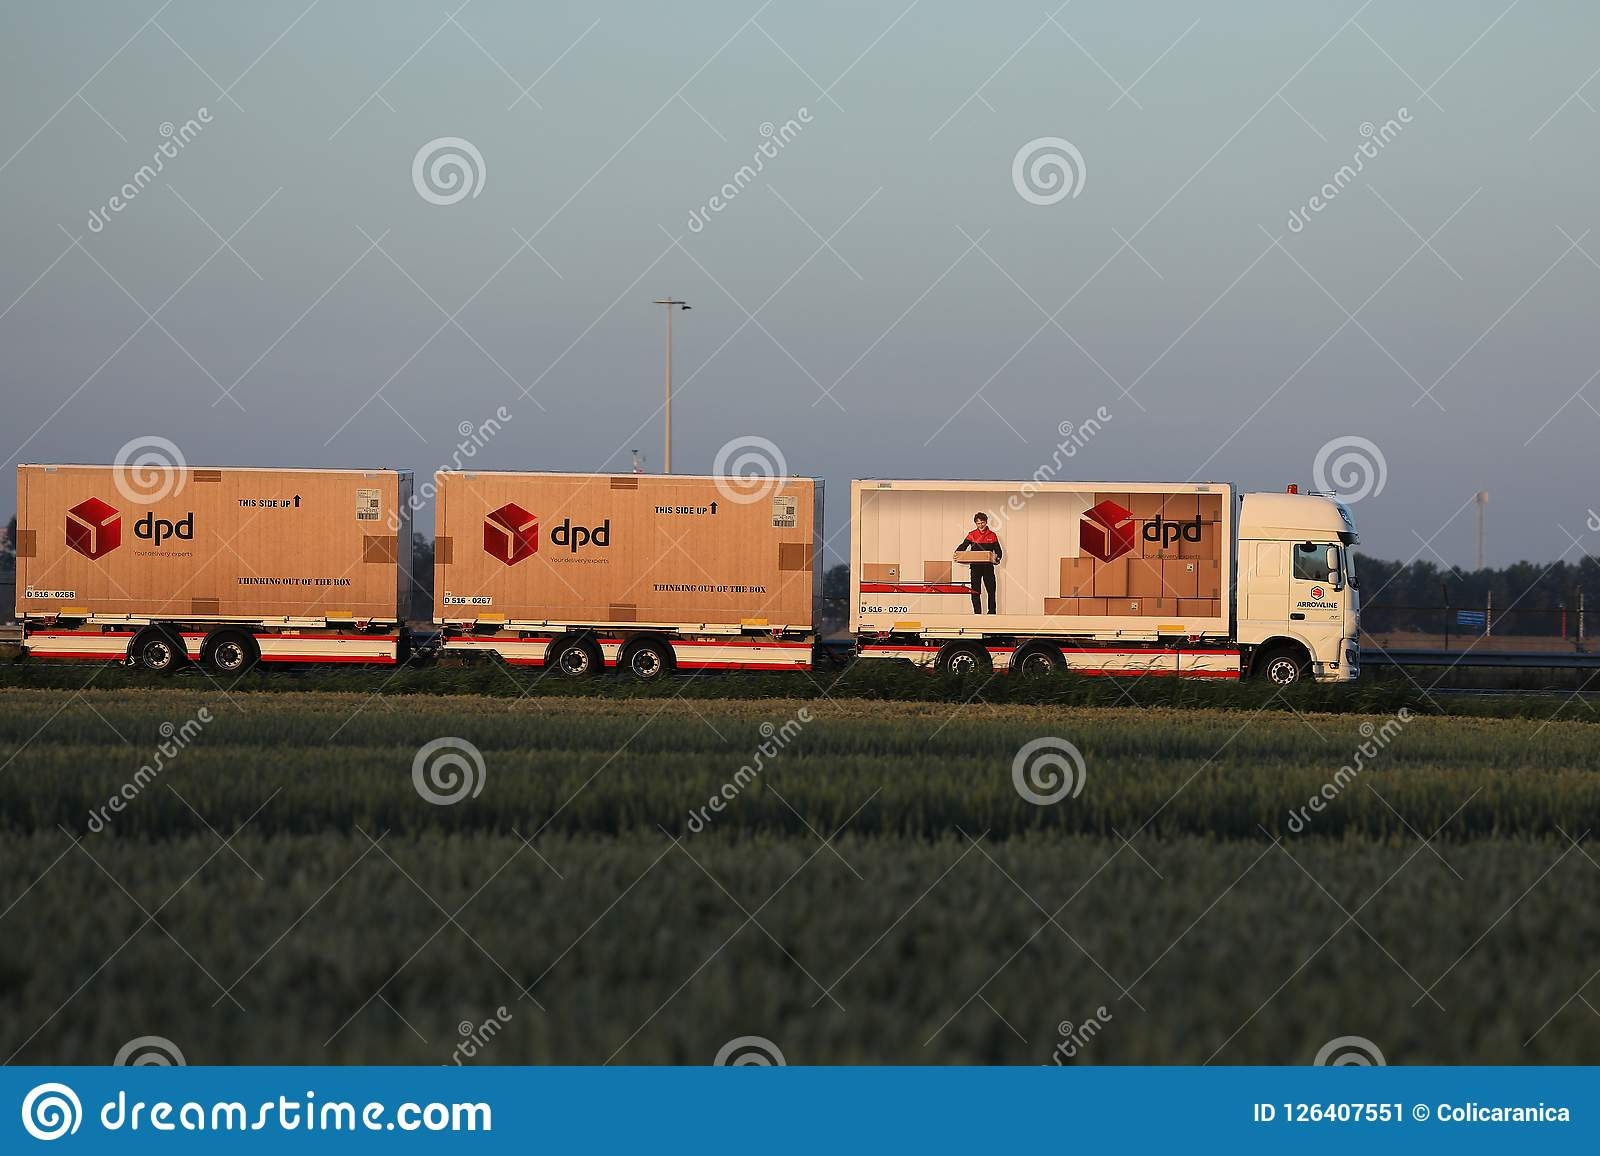 Dpd Truck On Netherlands Highway Editorial Photo - Image of beer